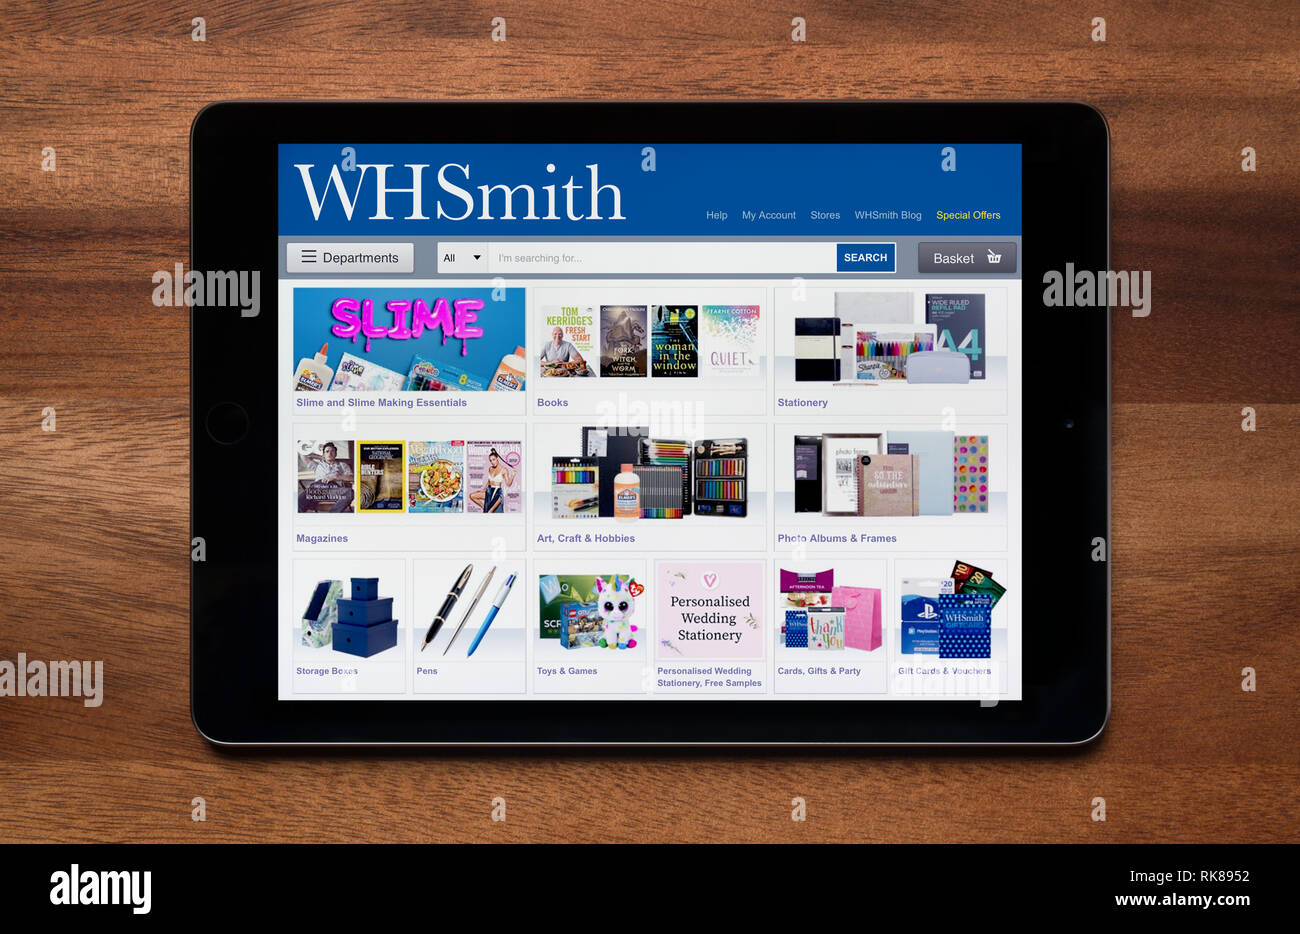 The website of WH Smith is seen on an iPad tablet, which is resting on a wooden table (Editorial use only). - Stock Image